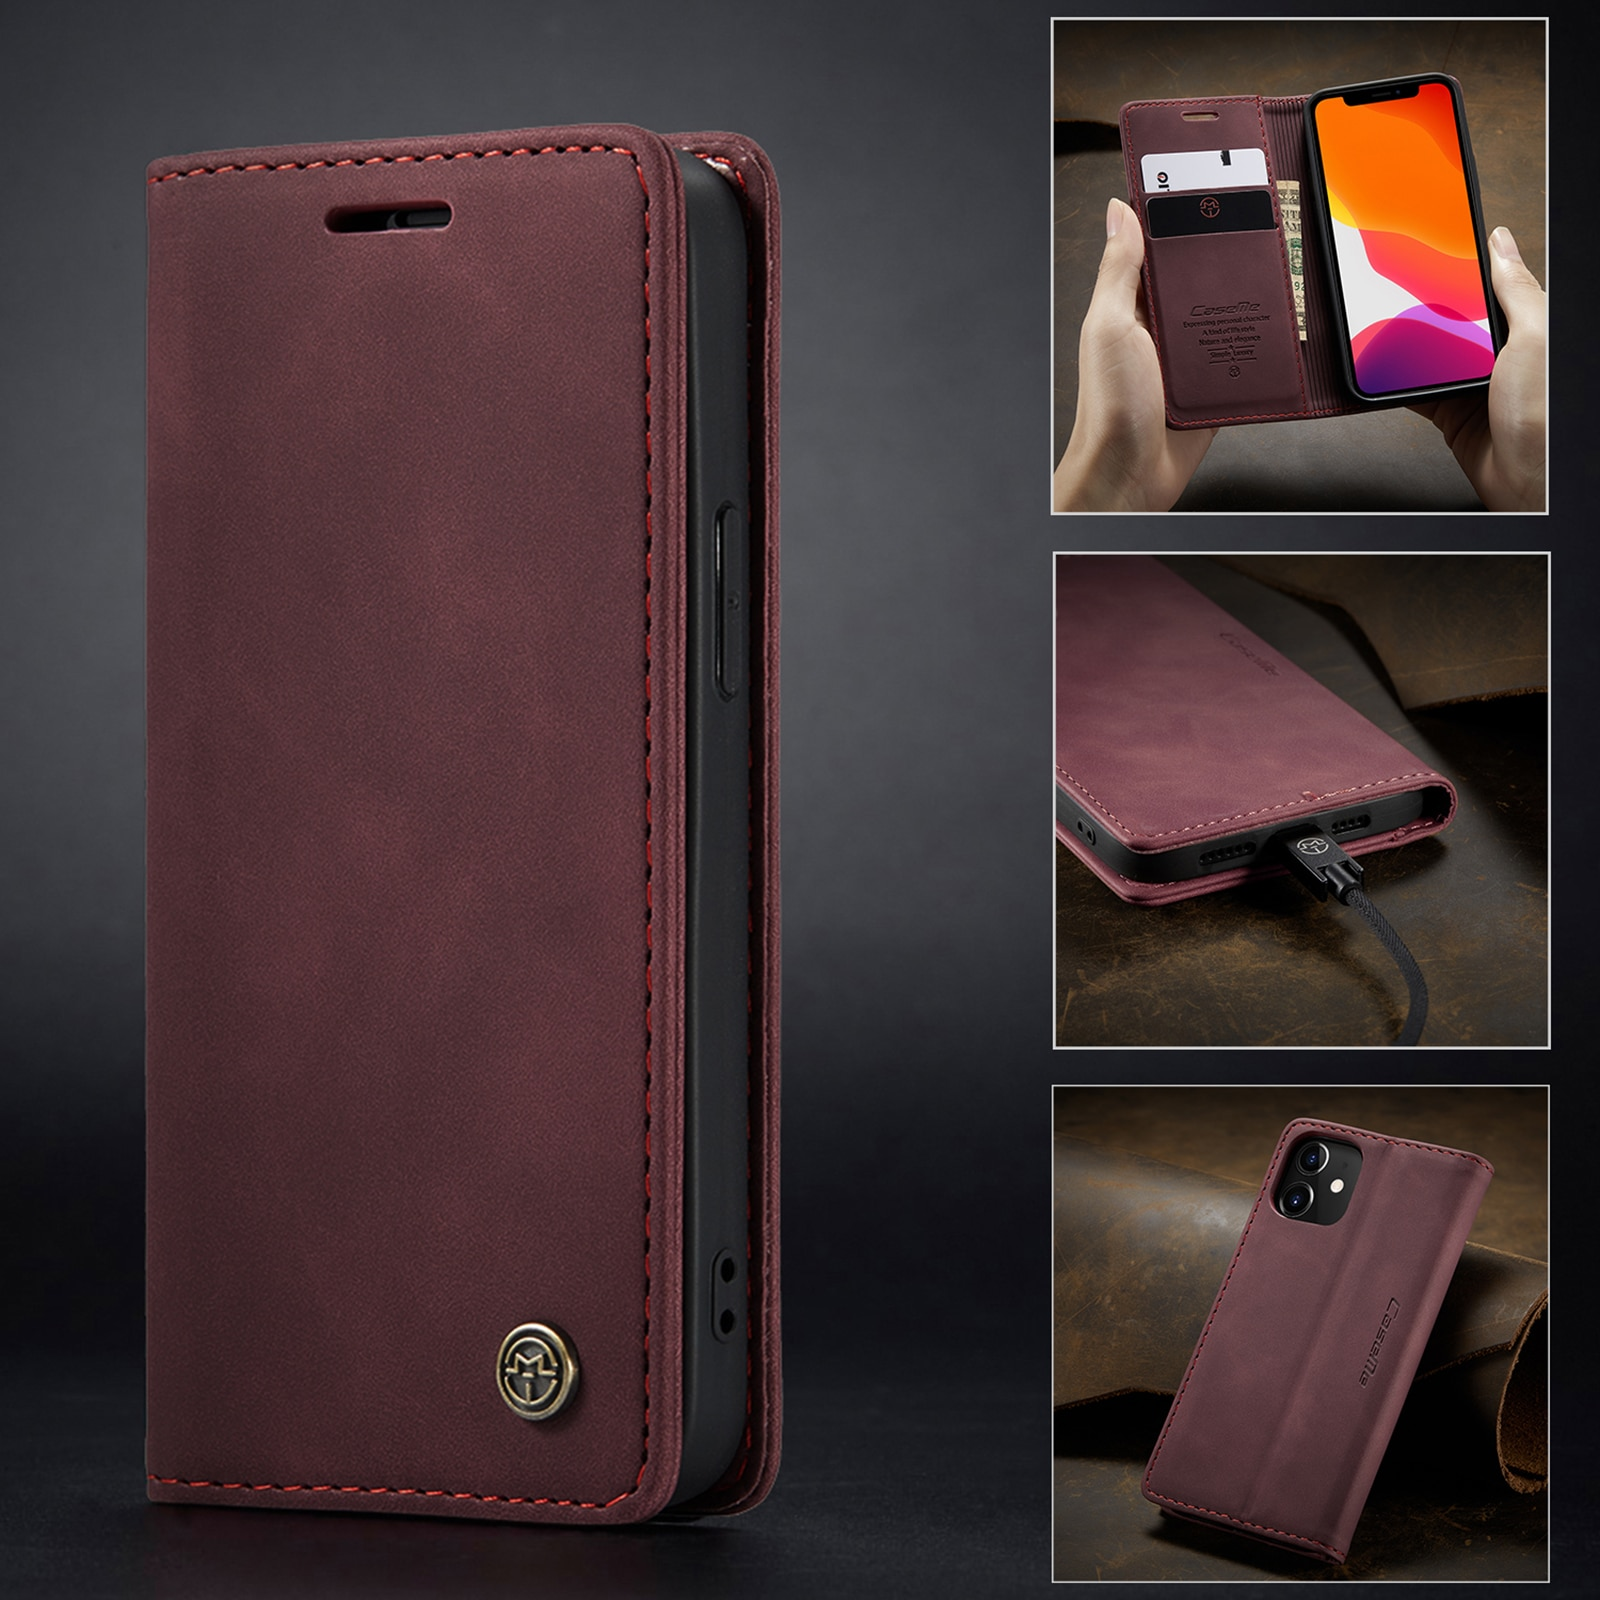 Heffbdd0658474454ac3e000e0a8476648 - Magnetic Leather Flip Case For iPhone 12 / Pro / Pro Max PU Leather Fitted Bumper Soft Retro Flip Case Book Wallet Cover